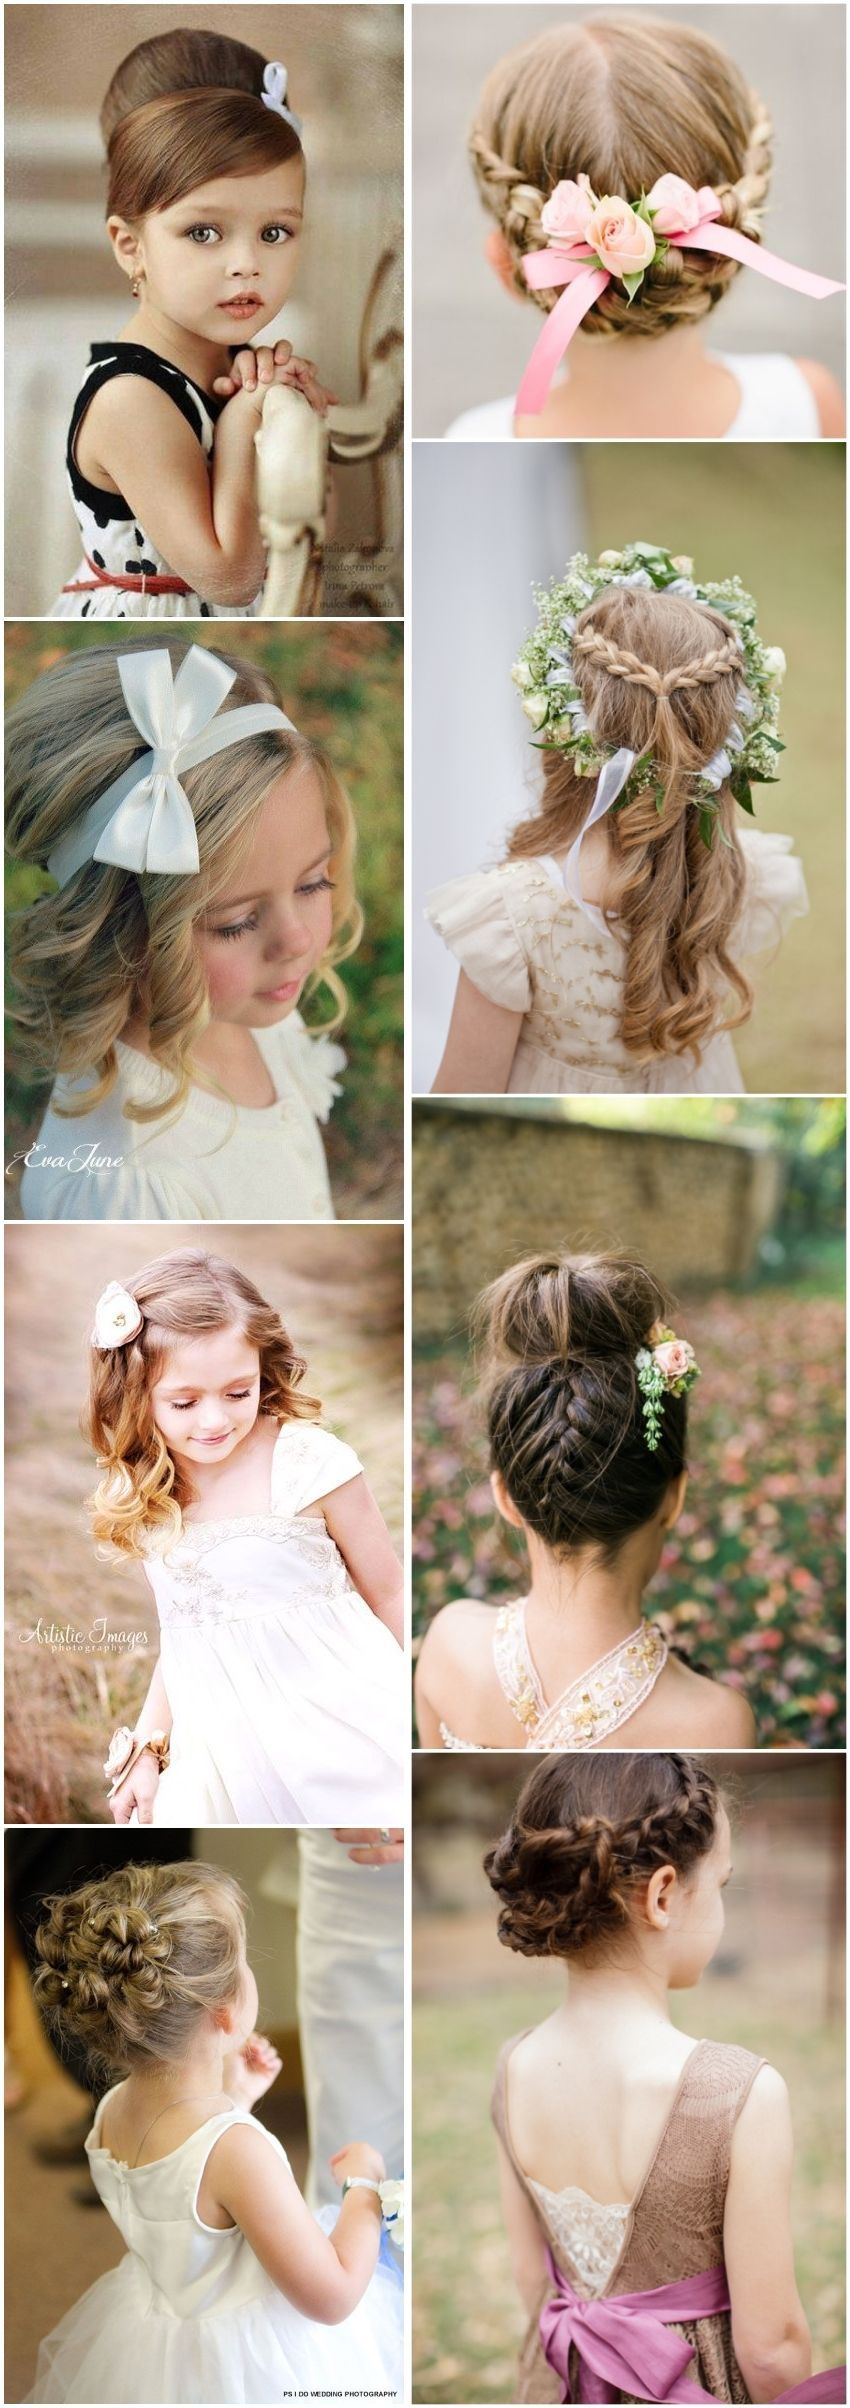 super cute little girl hairstyles for wedding Детские прически